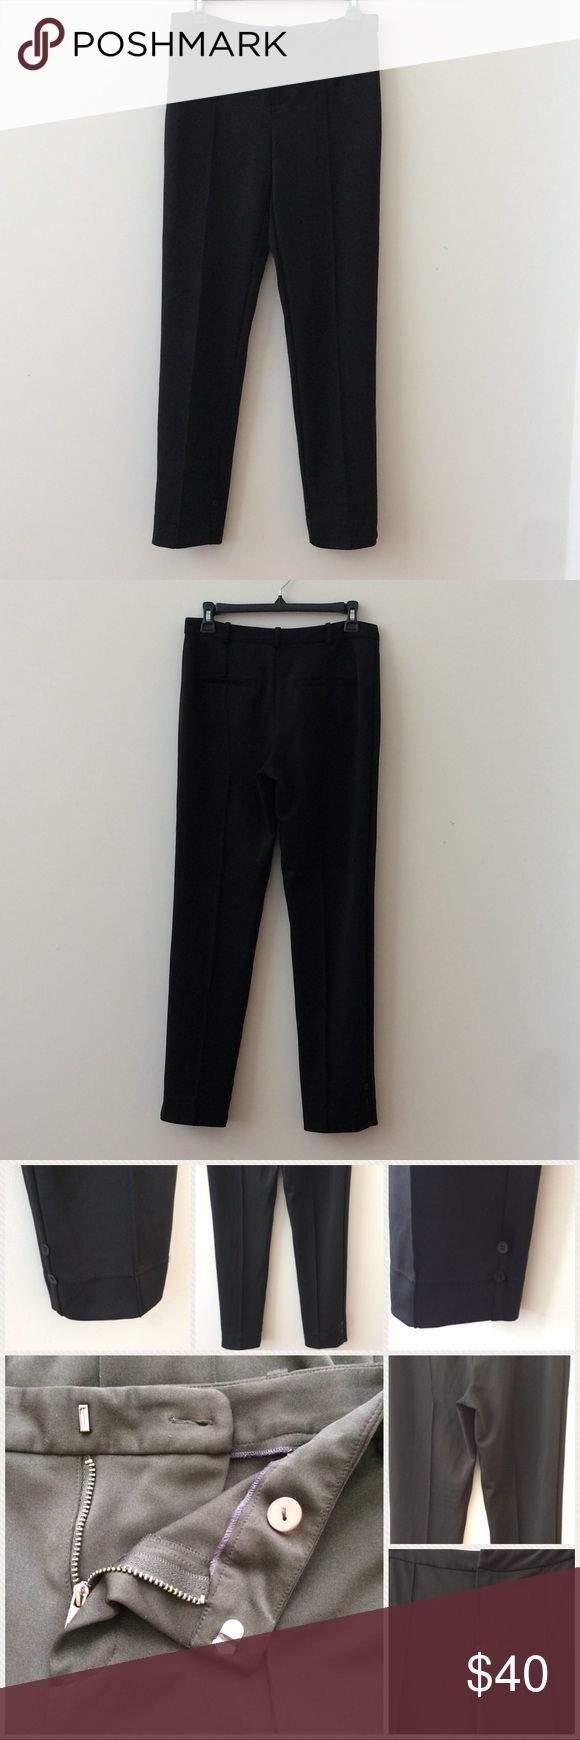 """NEW LISTING Rachel Roy Black Pants Size 6 Rachel Roy black pants size 6. Button, hook & zipper closure. Has 5 loops if you want to wear w/a belt. 2 faux back pockets. 2 accent black buttons on both sides of each pant leg.    89% Polyester & 11% Spandex.   Approximate measurements:   Waist = 28""""  Hip = 34"""" Outseam = 37.5"""" Inseam = 28"""" Front Rise = 10.5""""  Back Rise = 12""""  Leg Opening = 12""""   Great condition. Open to offers! Thanks. RACHEL Rachel Roy Pants"""